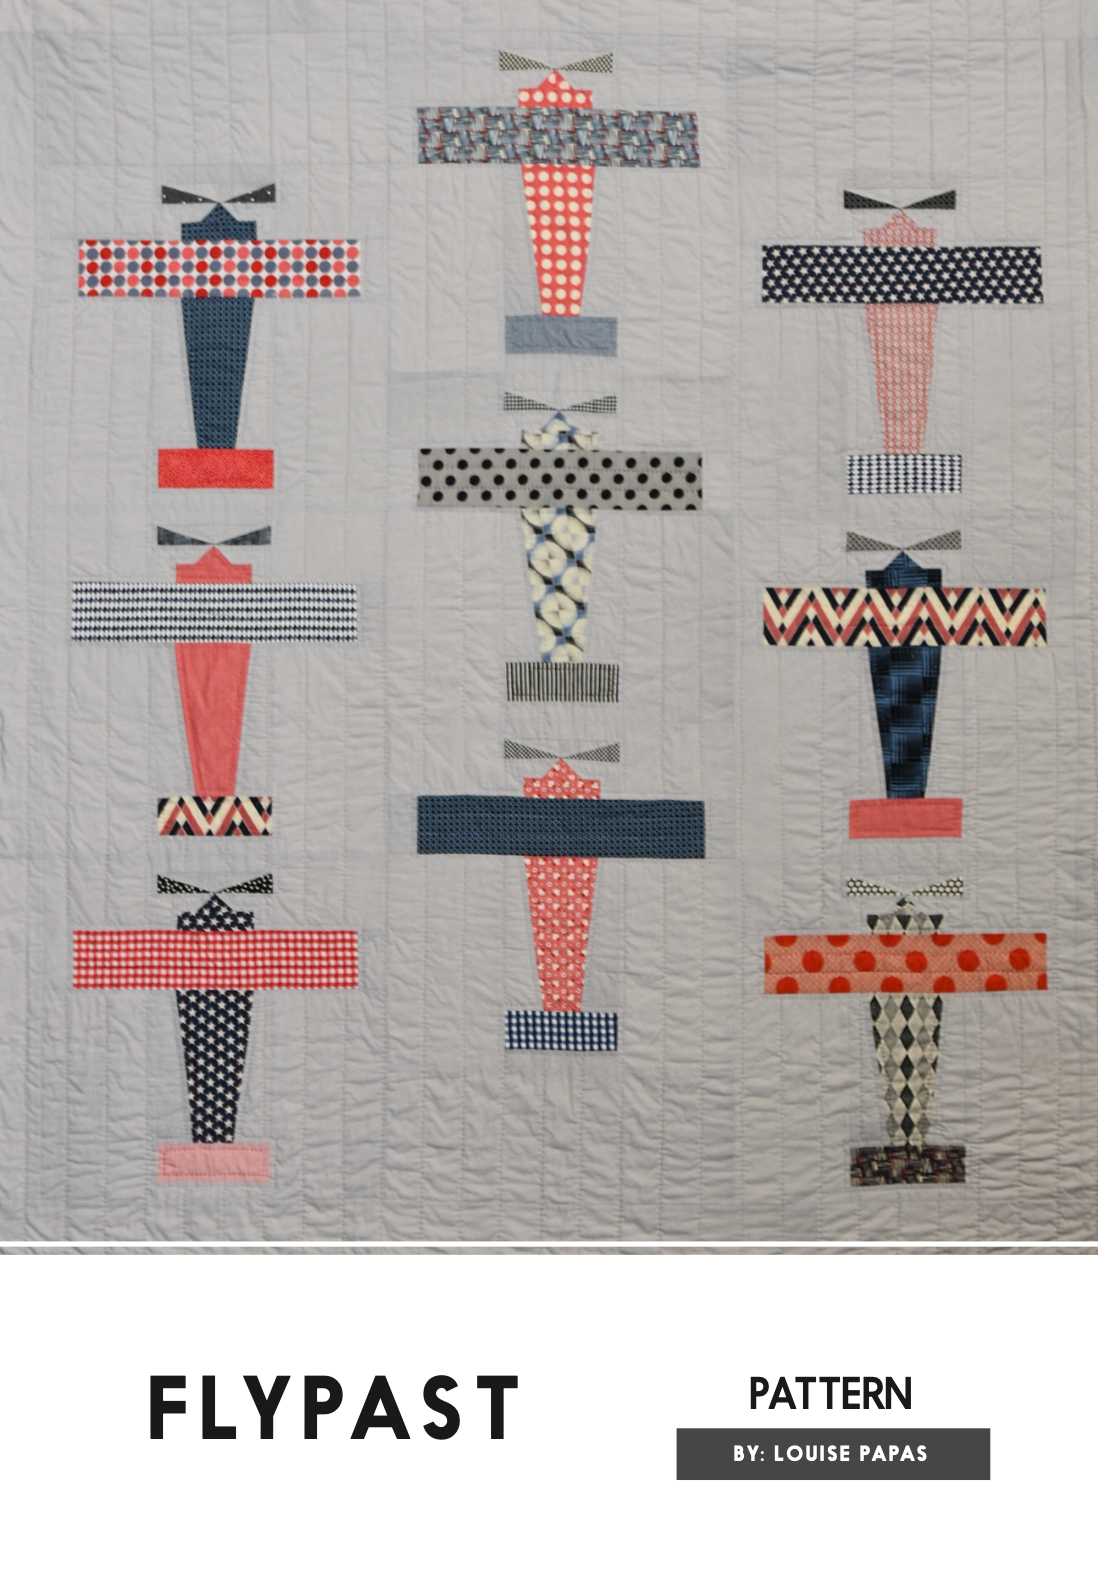 Flypast Pattern by Louise Papas